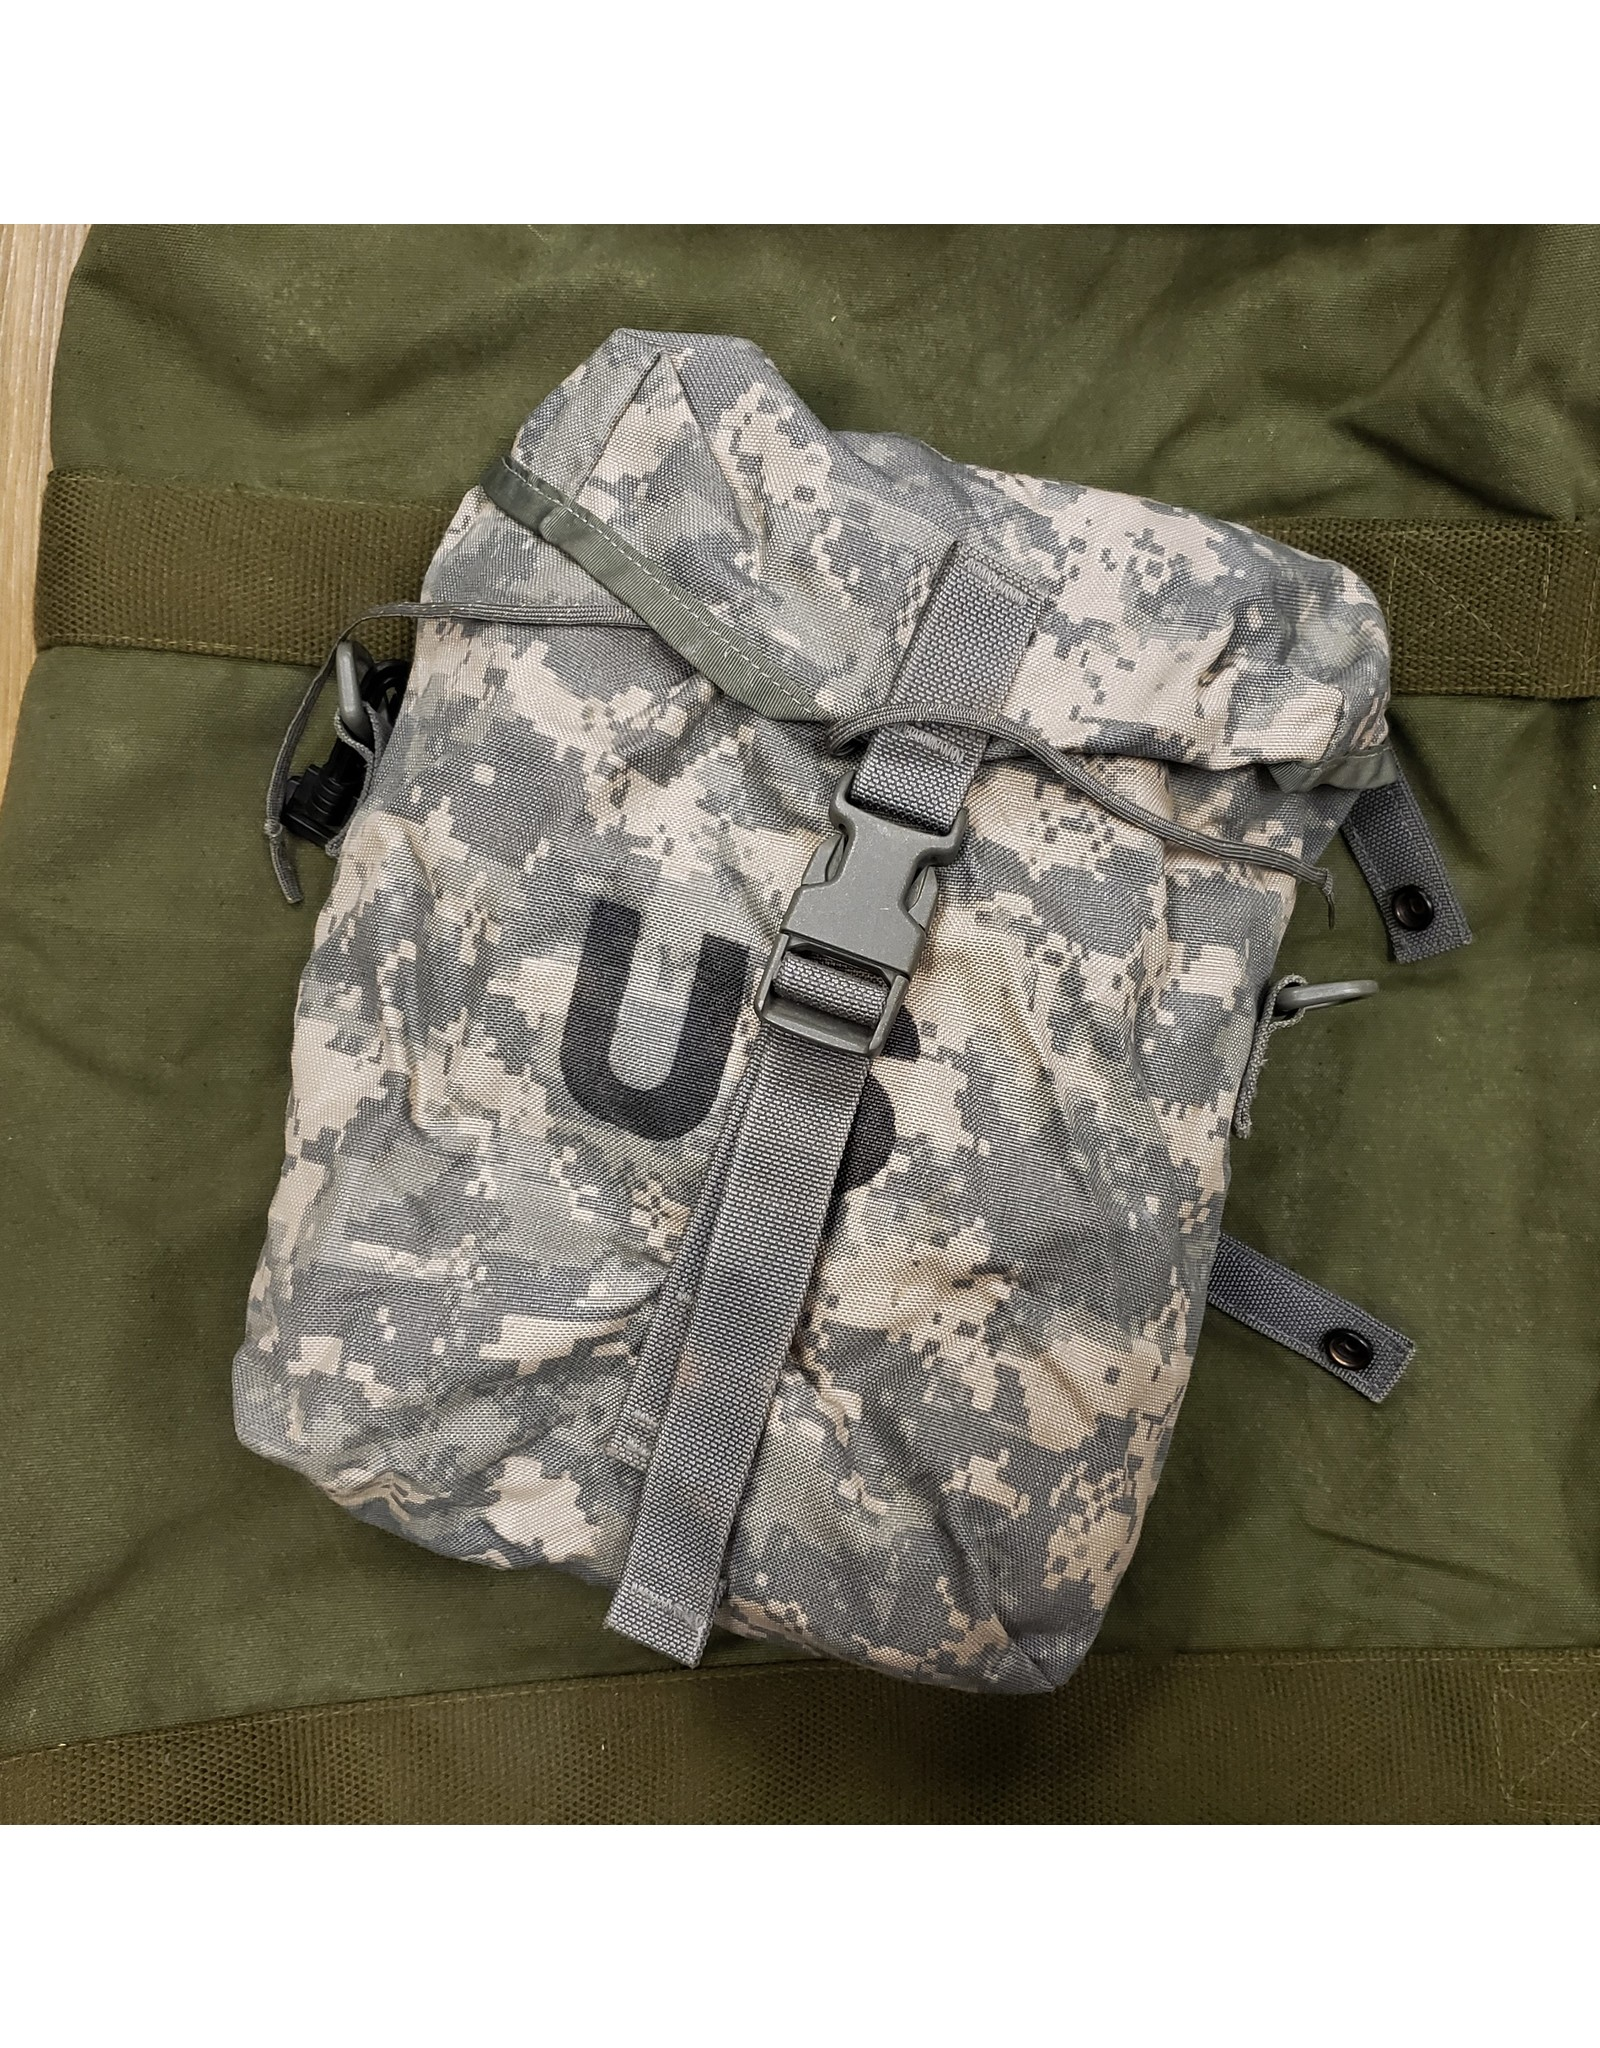 WORLD FAMOUS SALES U.S. ACU SUSTAINMENT POUCH USED